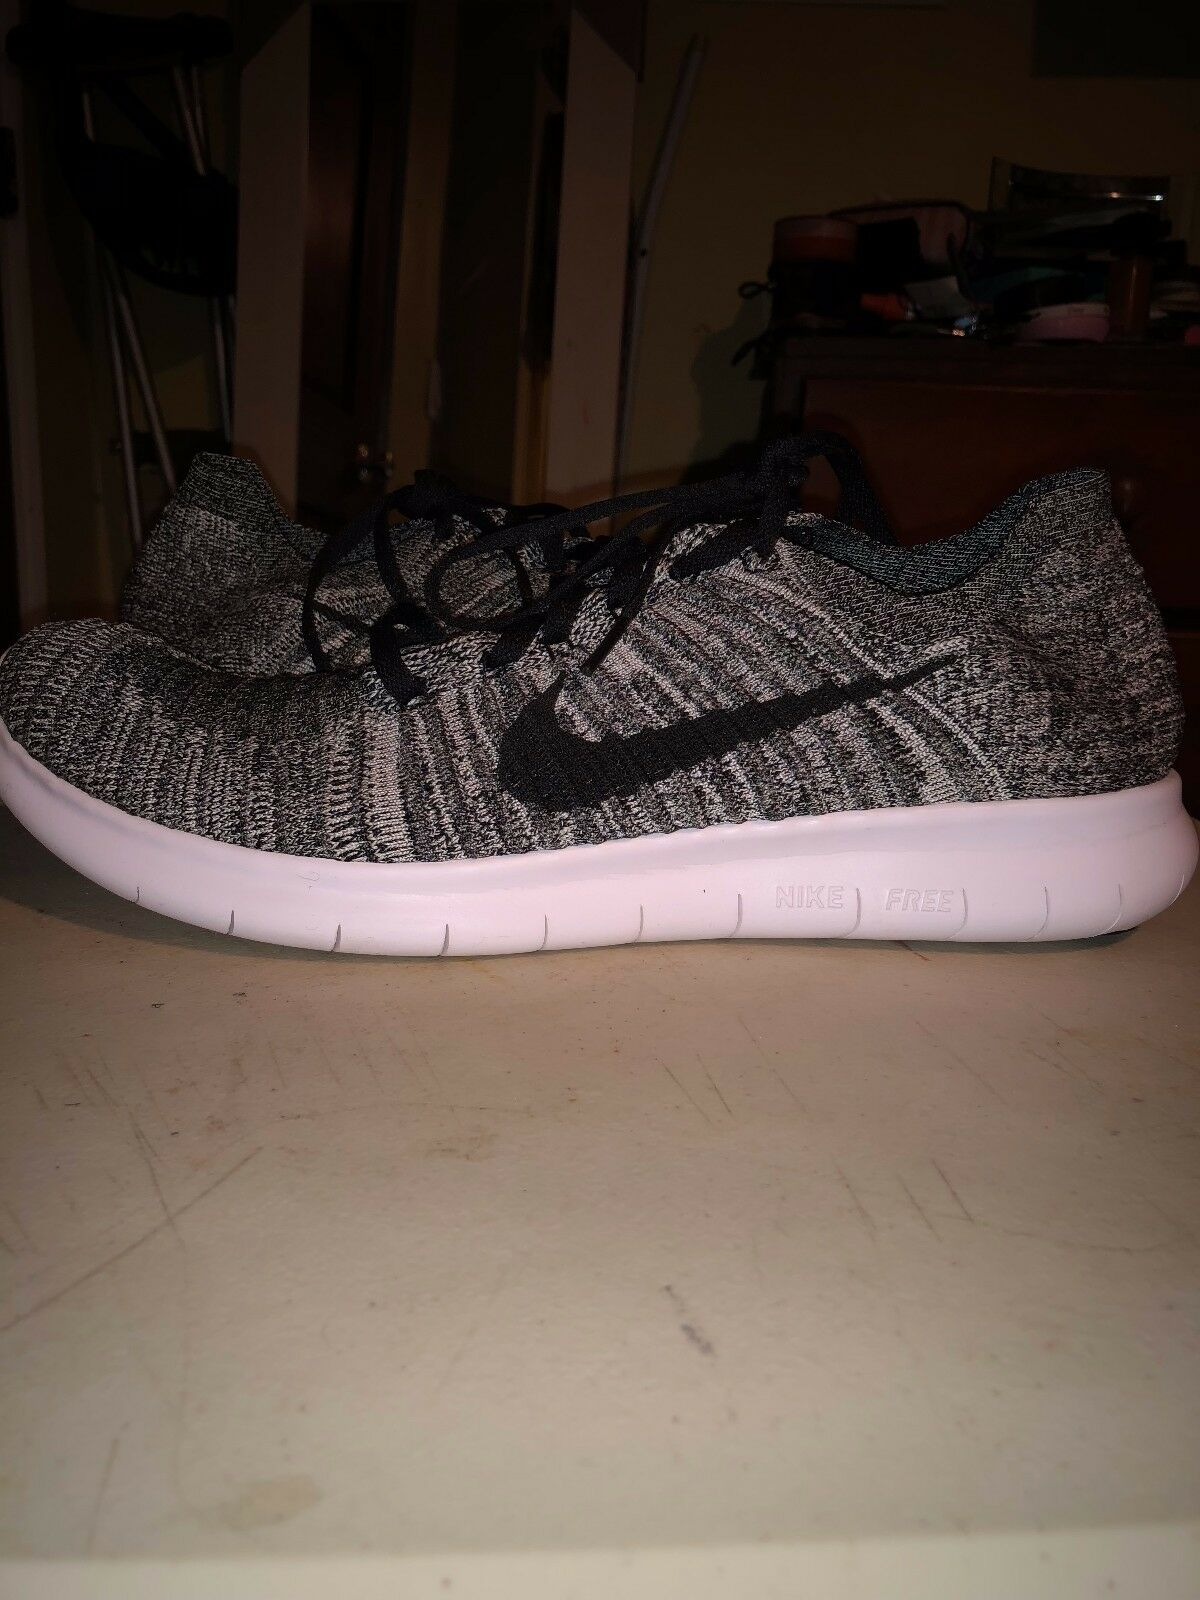 New shoes for men and women, limited time discount nike free rn flyknit in good condition , grey and white and black, used once